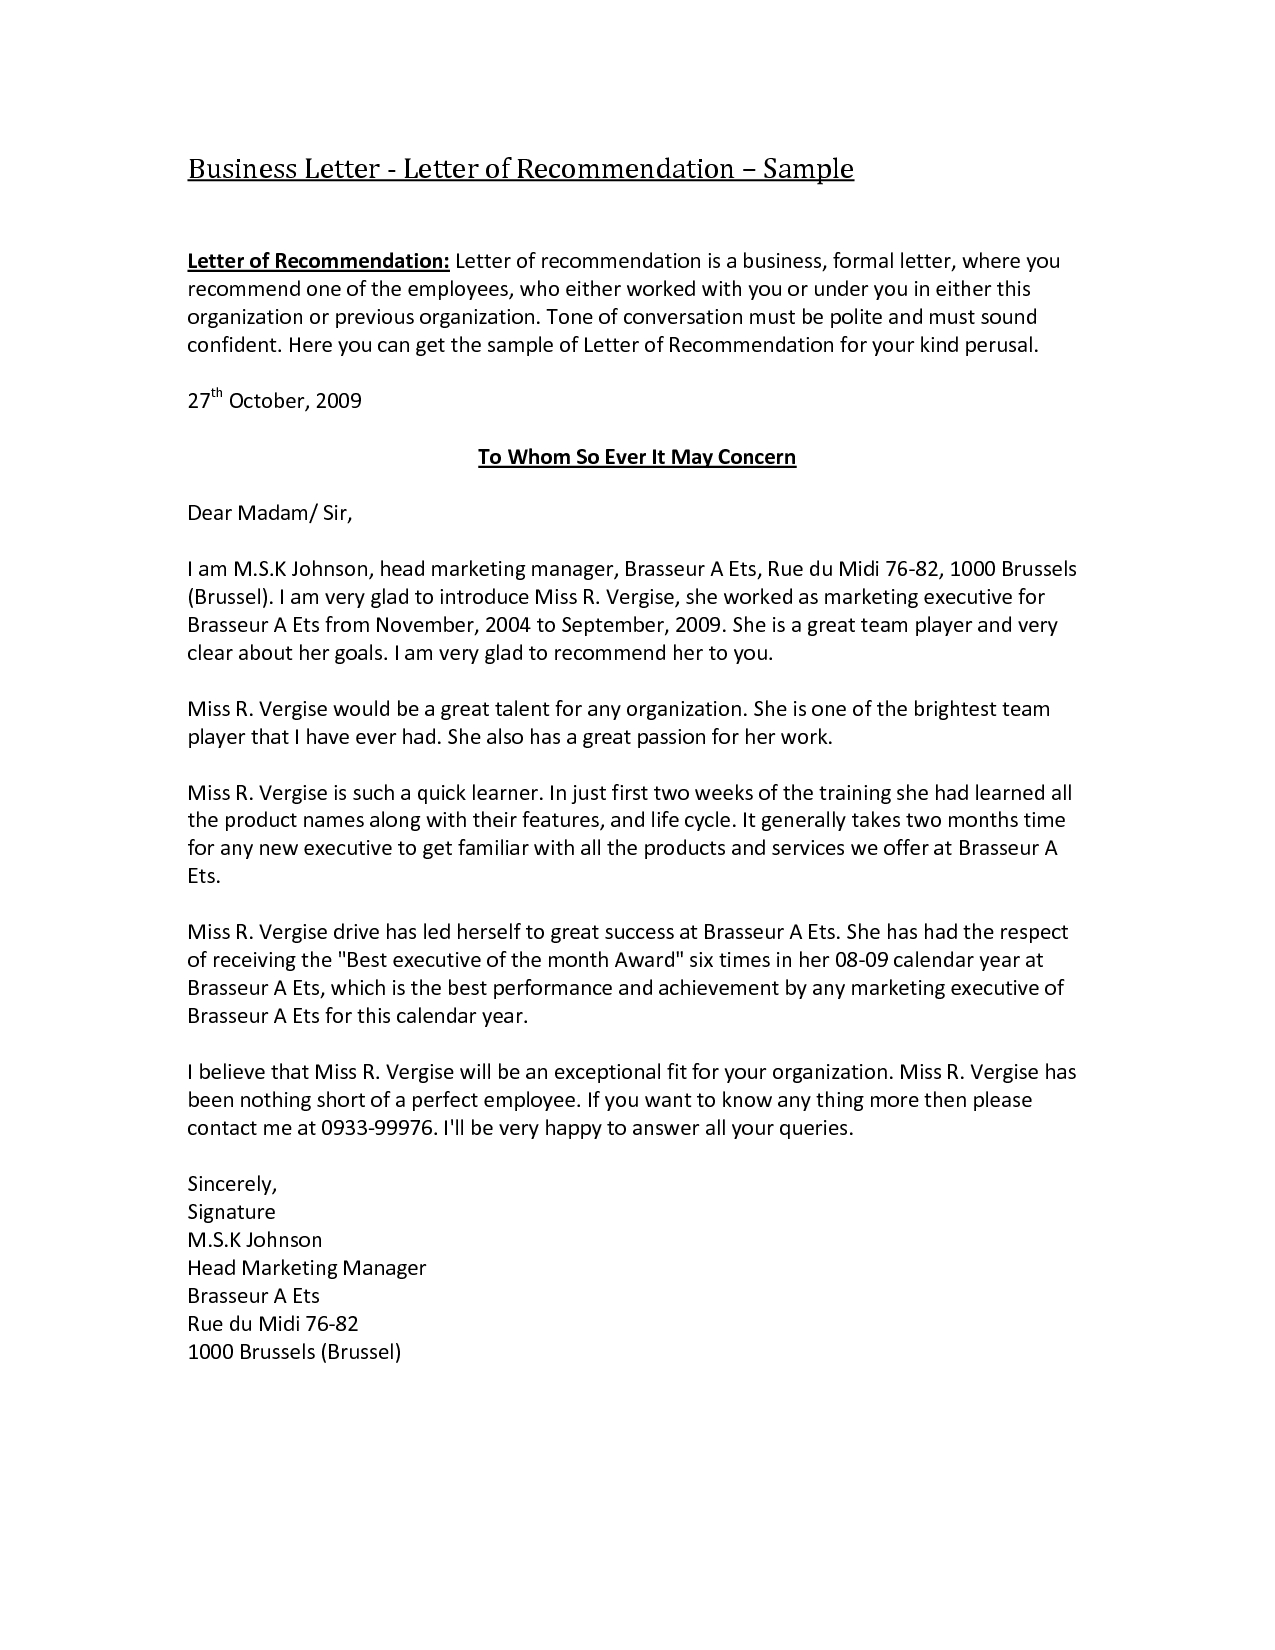 Personal Reference Letter for A Friend Template - Business Re Mendation Letter Template Acurnamedia